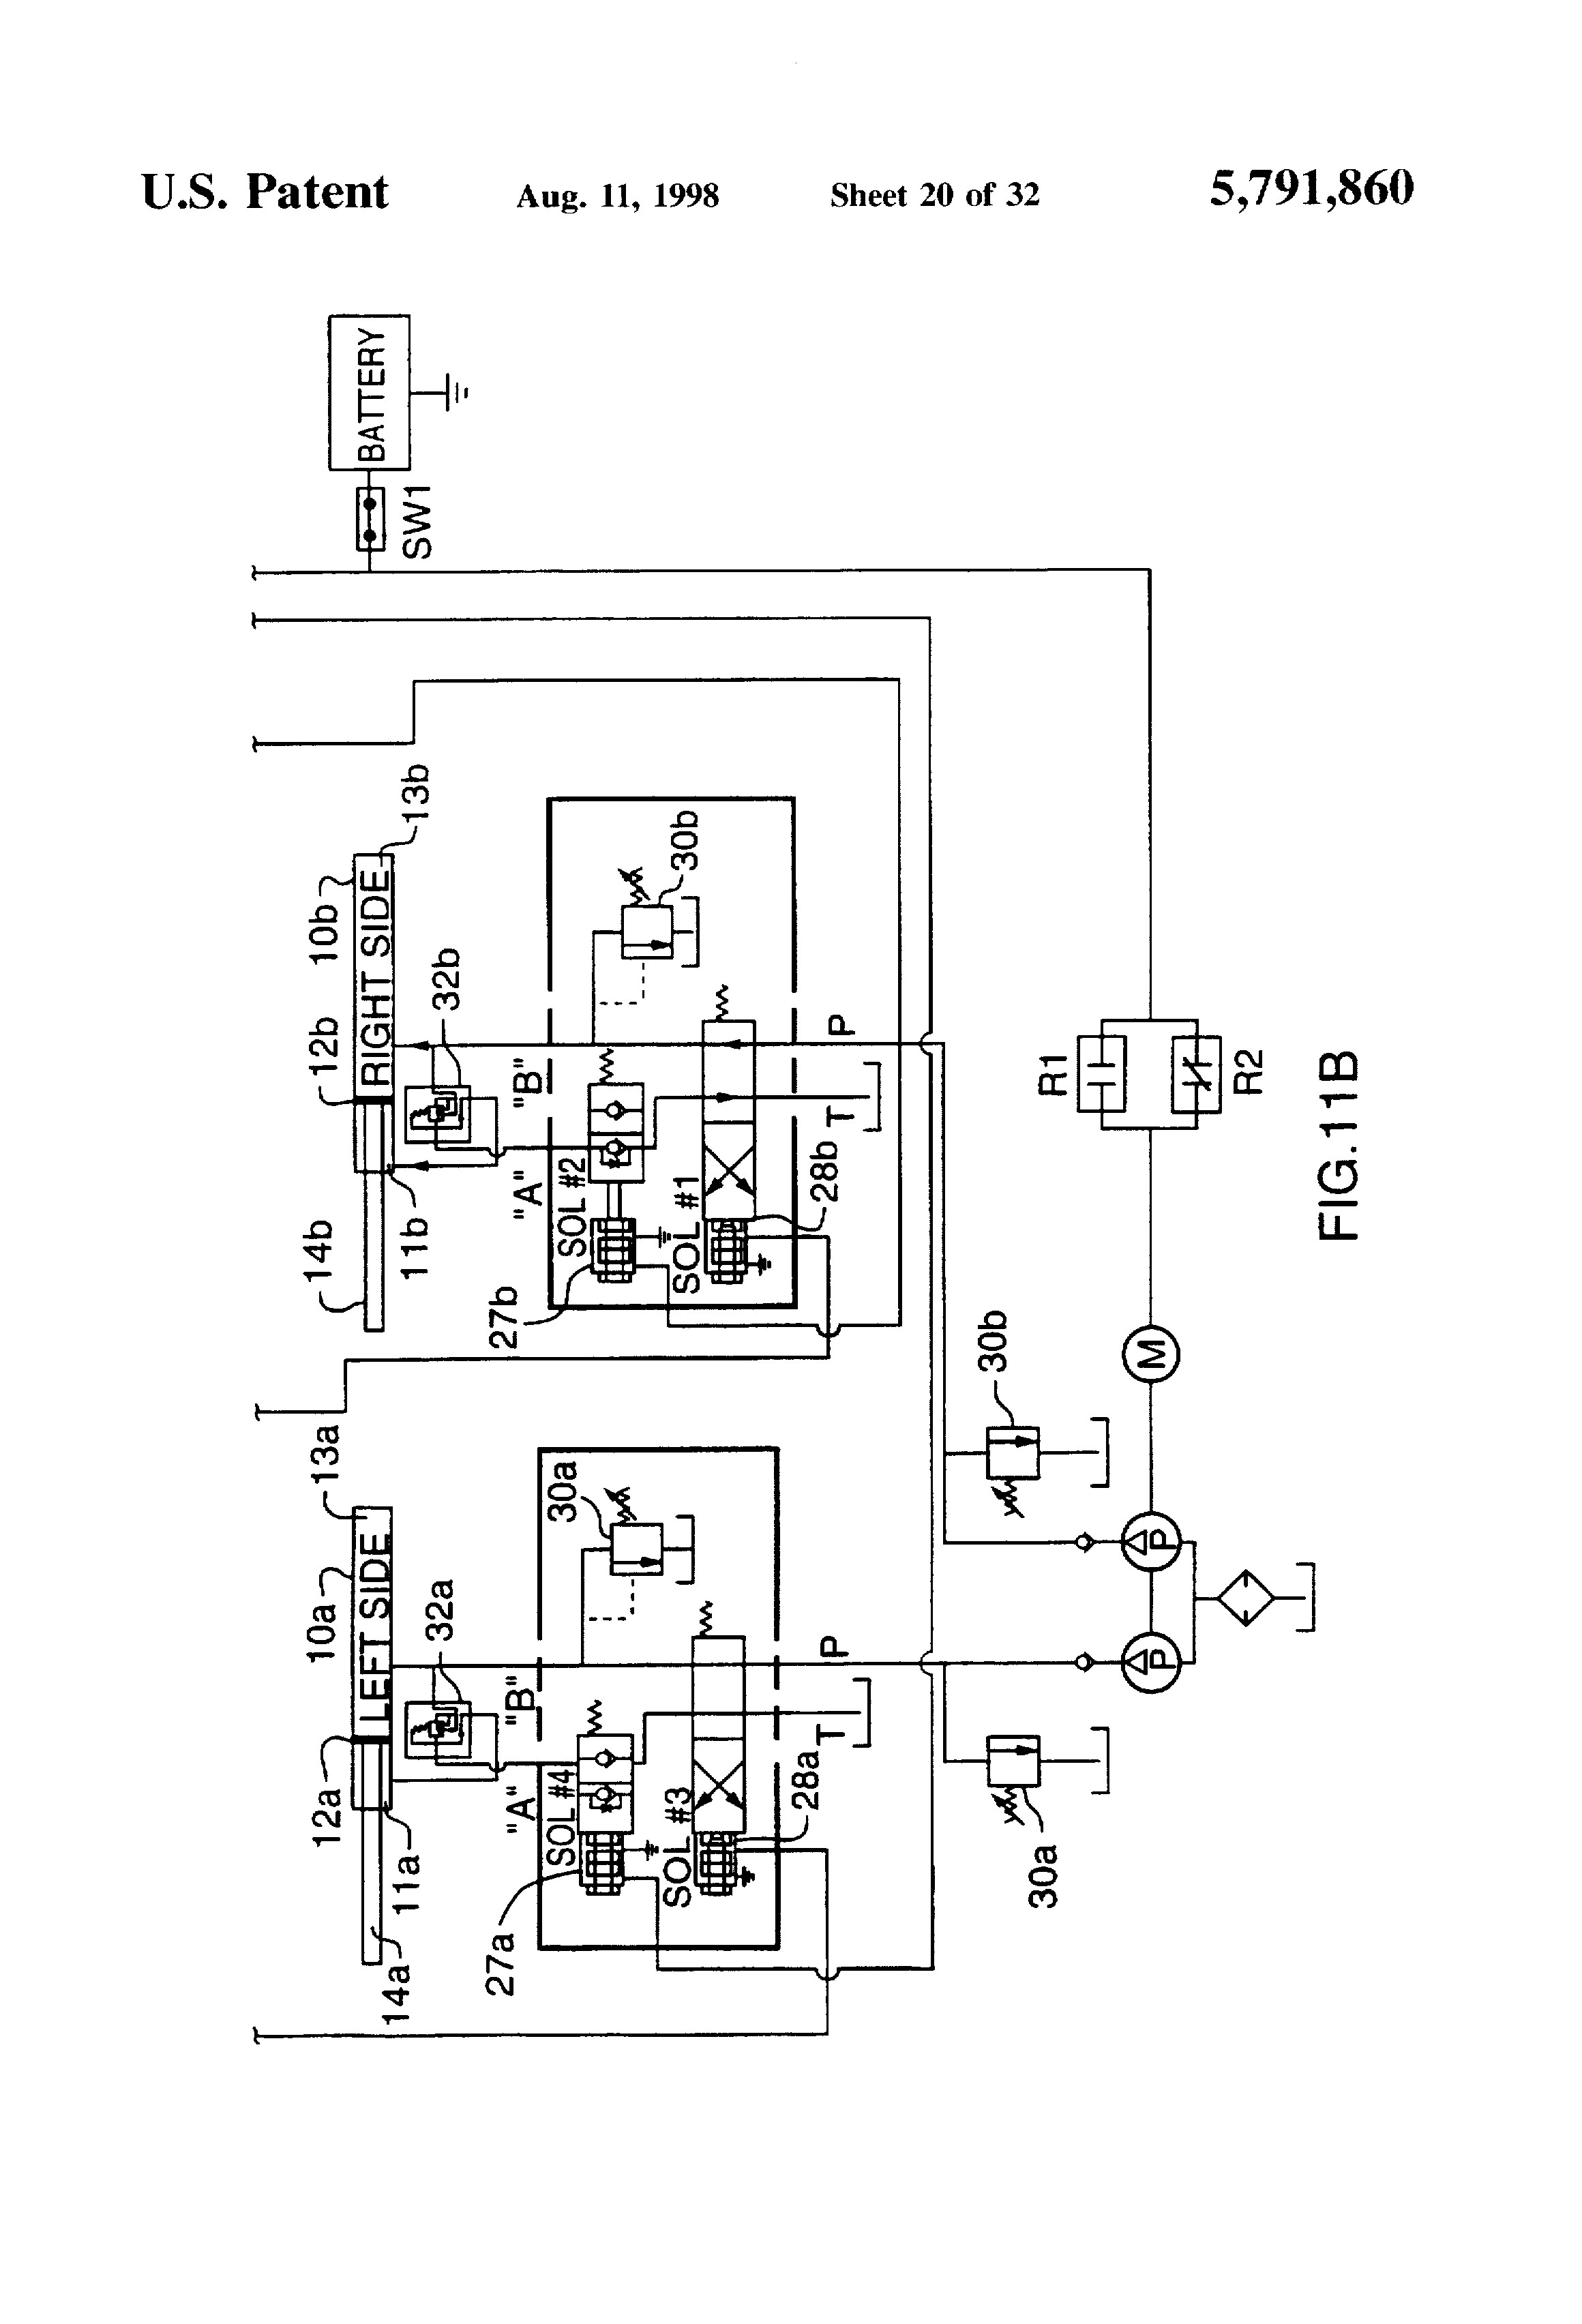 Bunker Hill Color Security Camera 95914 Wire Cololr Code 20 Fresh Waltco Liftgate Switch Wiring Diagram Of Bunker Hill Color Security Camera 95914 Wire Cololr Code